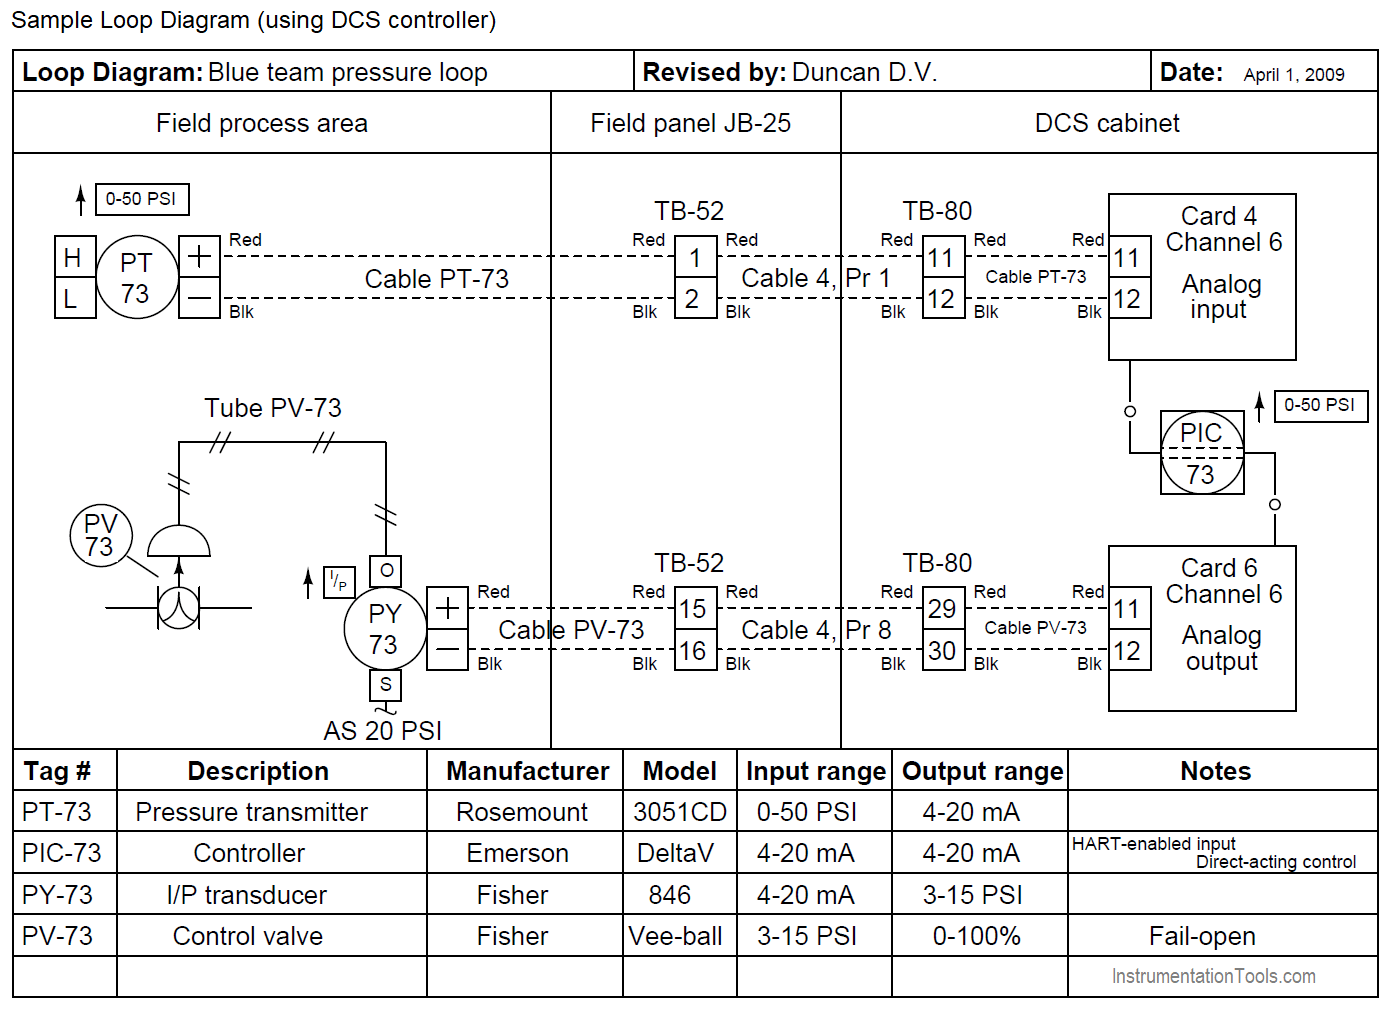 Loop Diagram using DCS controller